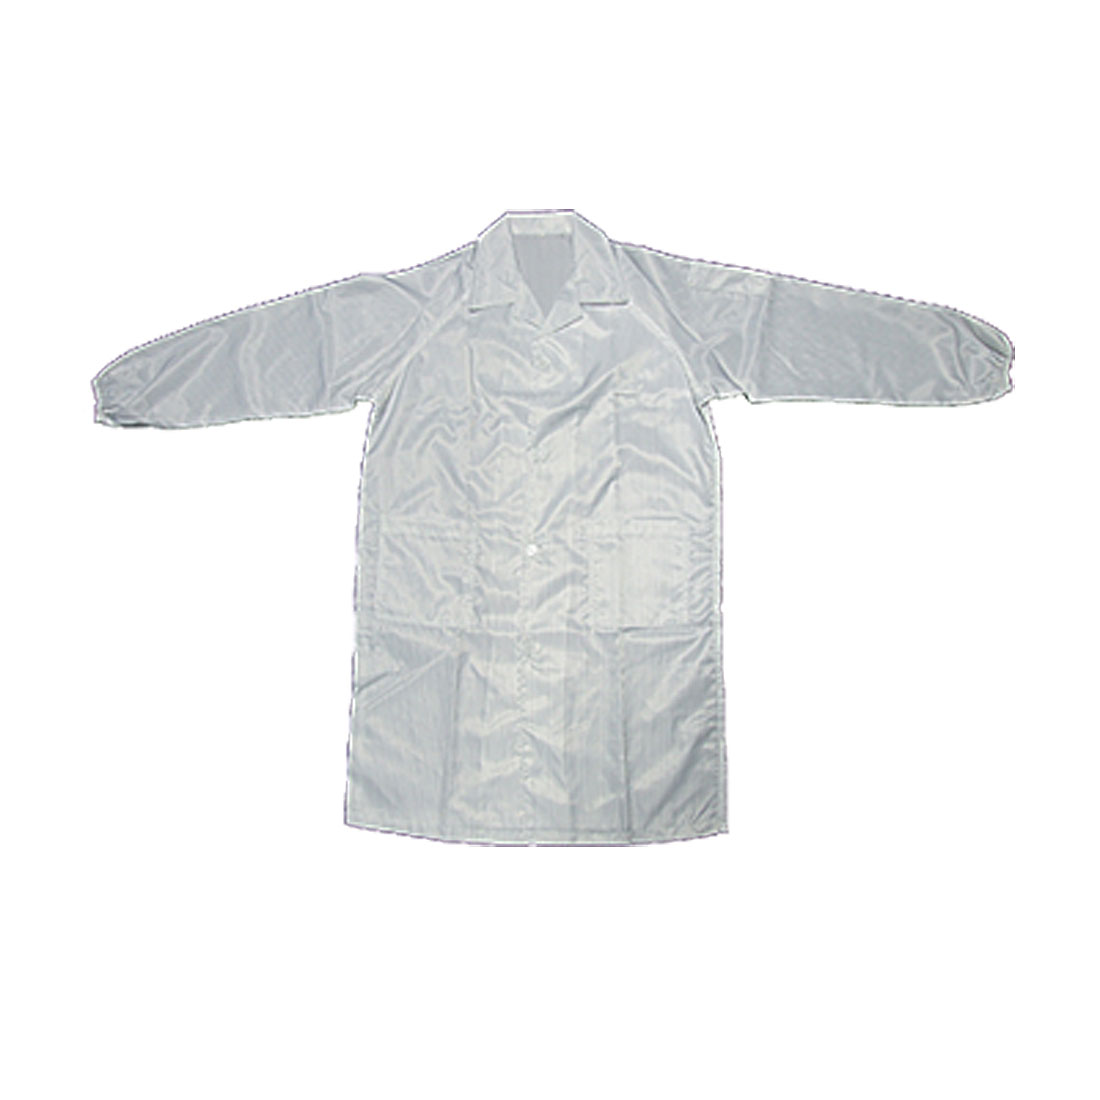 White Anti-static Cloth Unisex Size L LAB Coat Smock